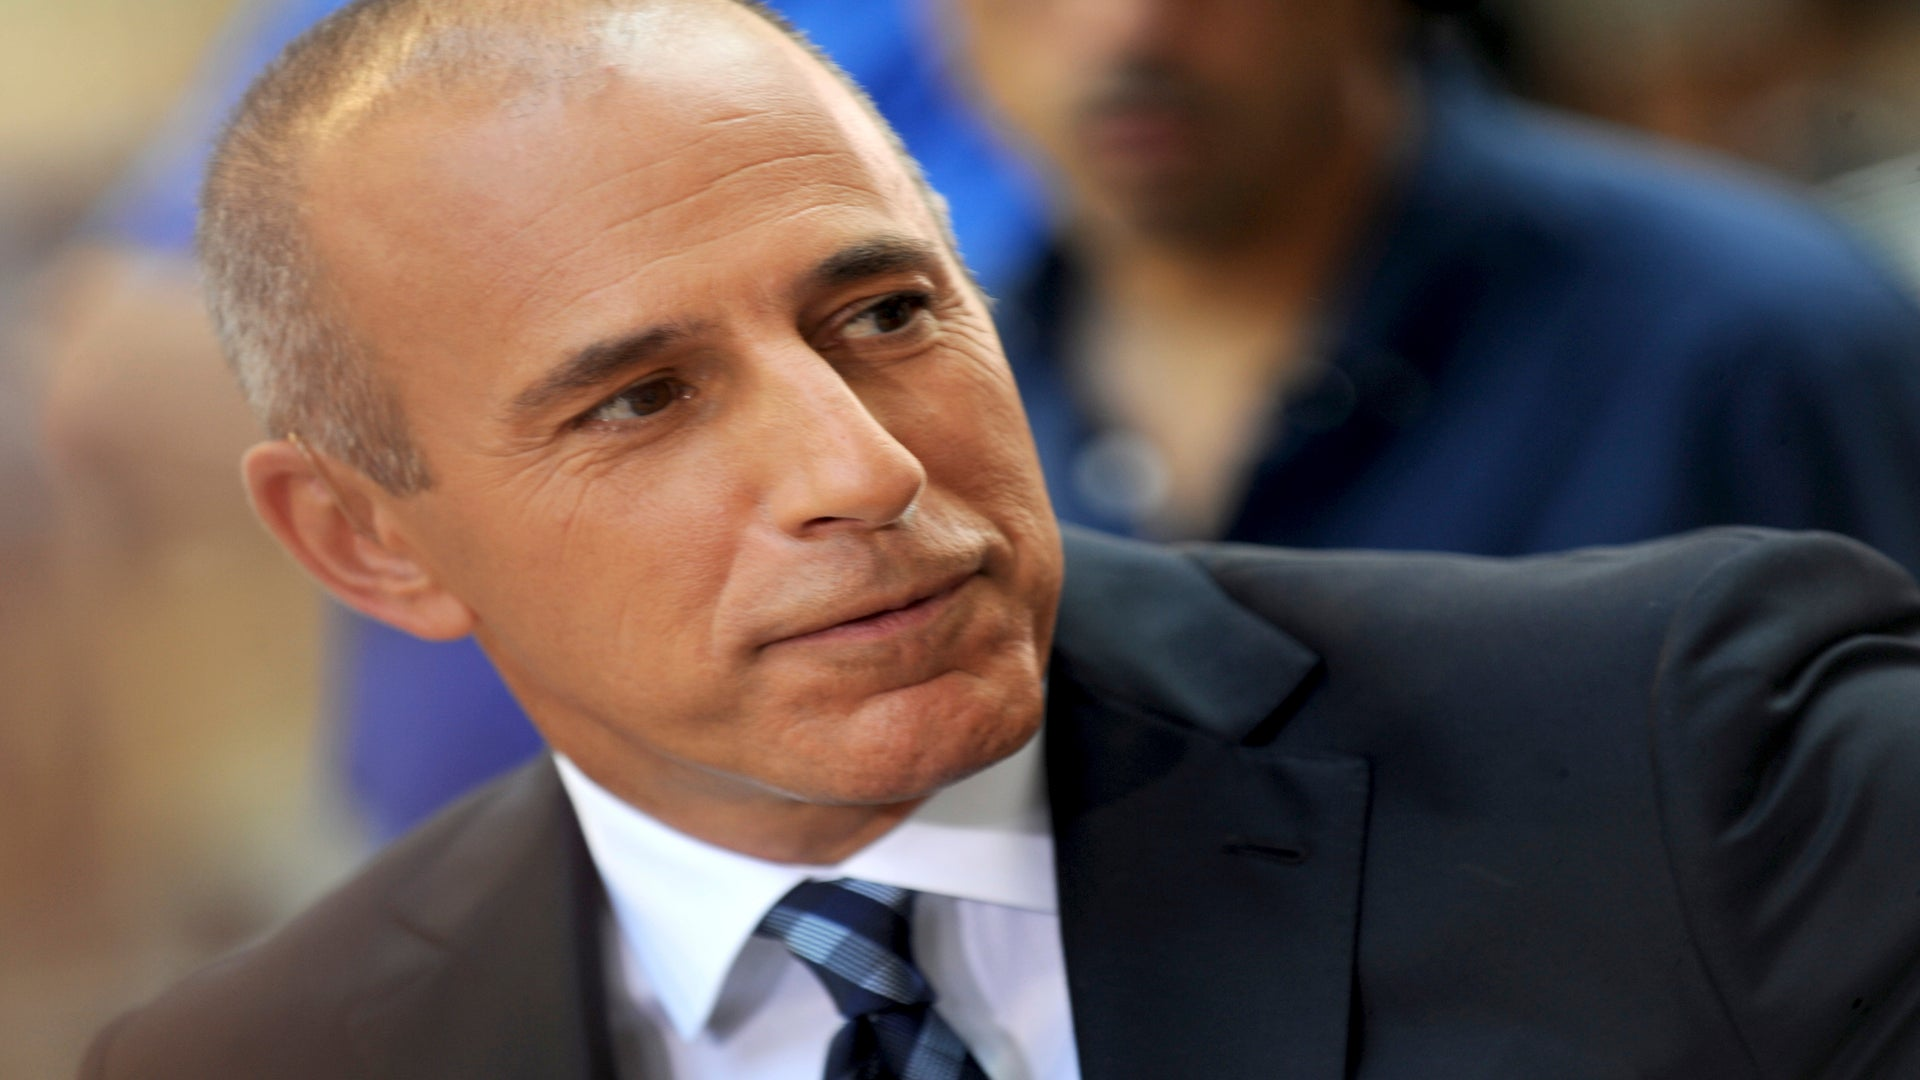 Matt Lauer Fired Overnight After NBC Received A Complaint Alleging 'Inappropriate Sexual Behavior'